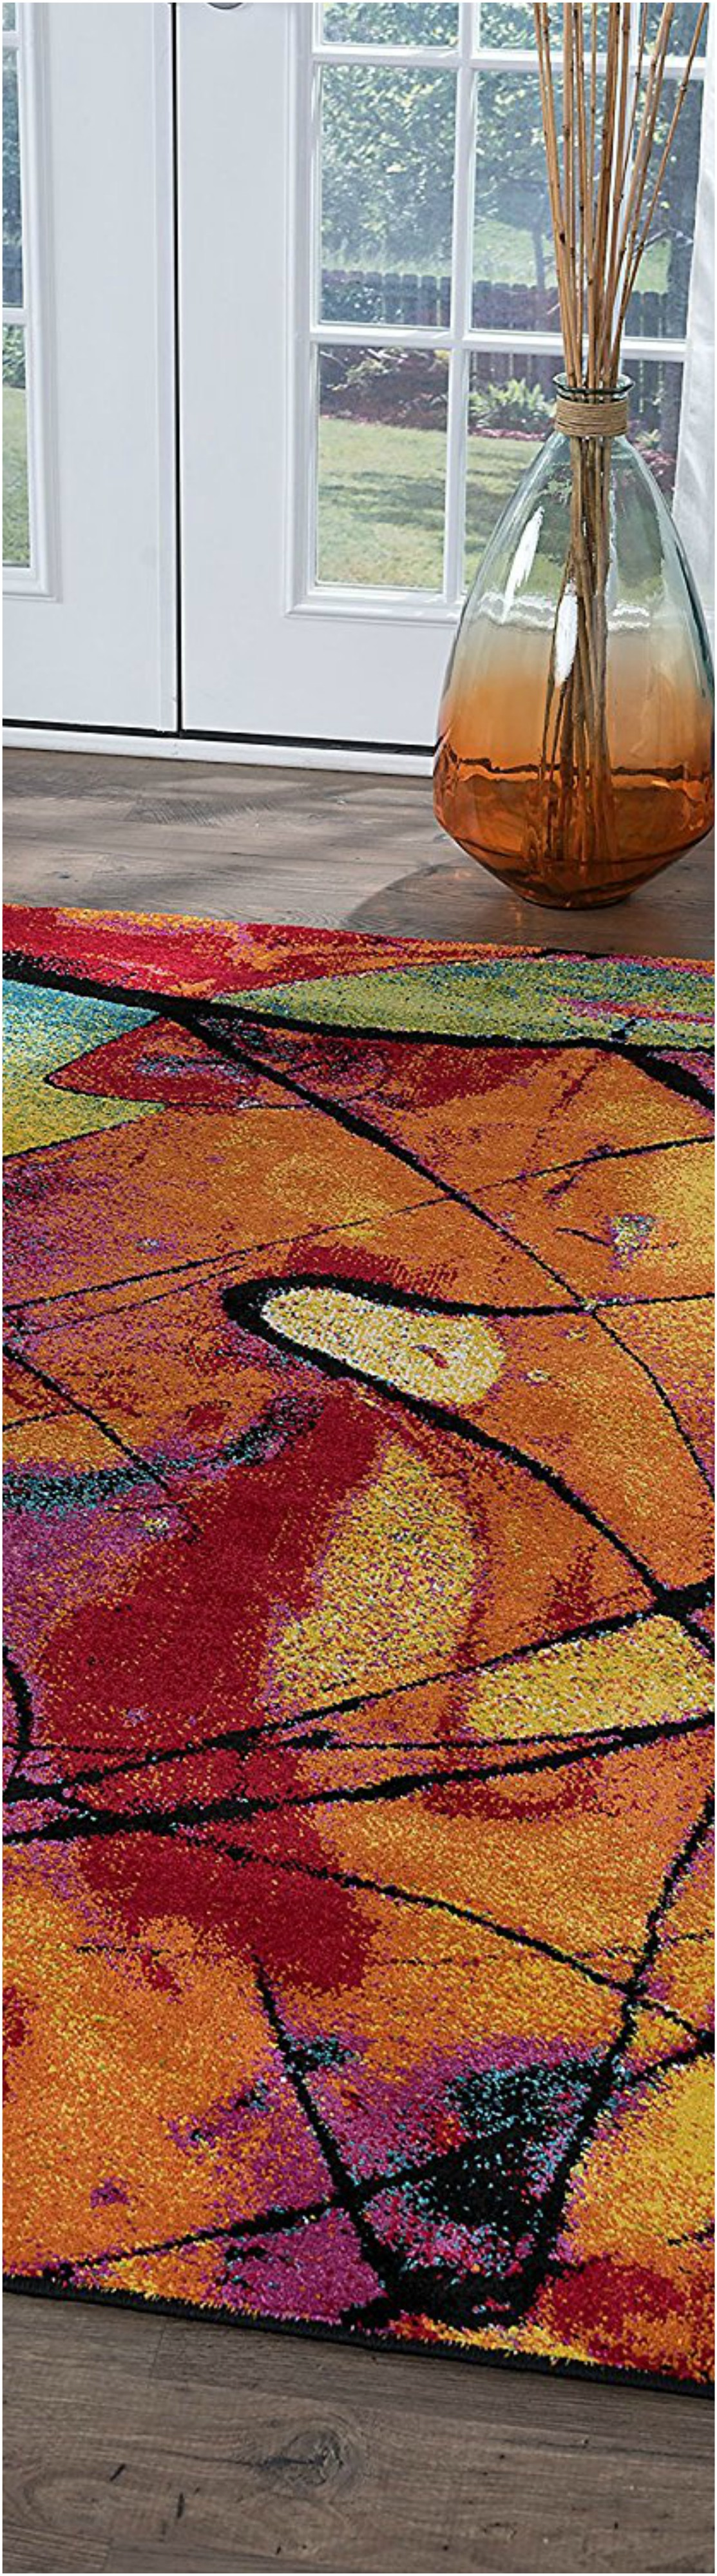 Contemporary Abstract Multi-Color Rectangle Rug Thewowdecor